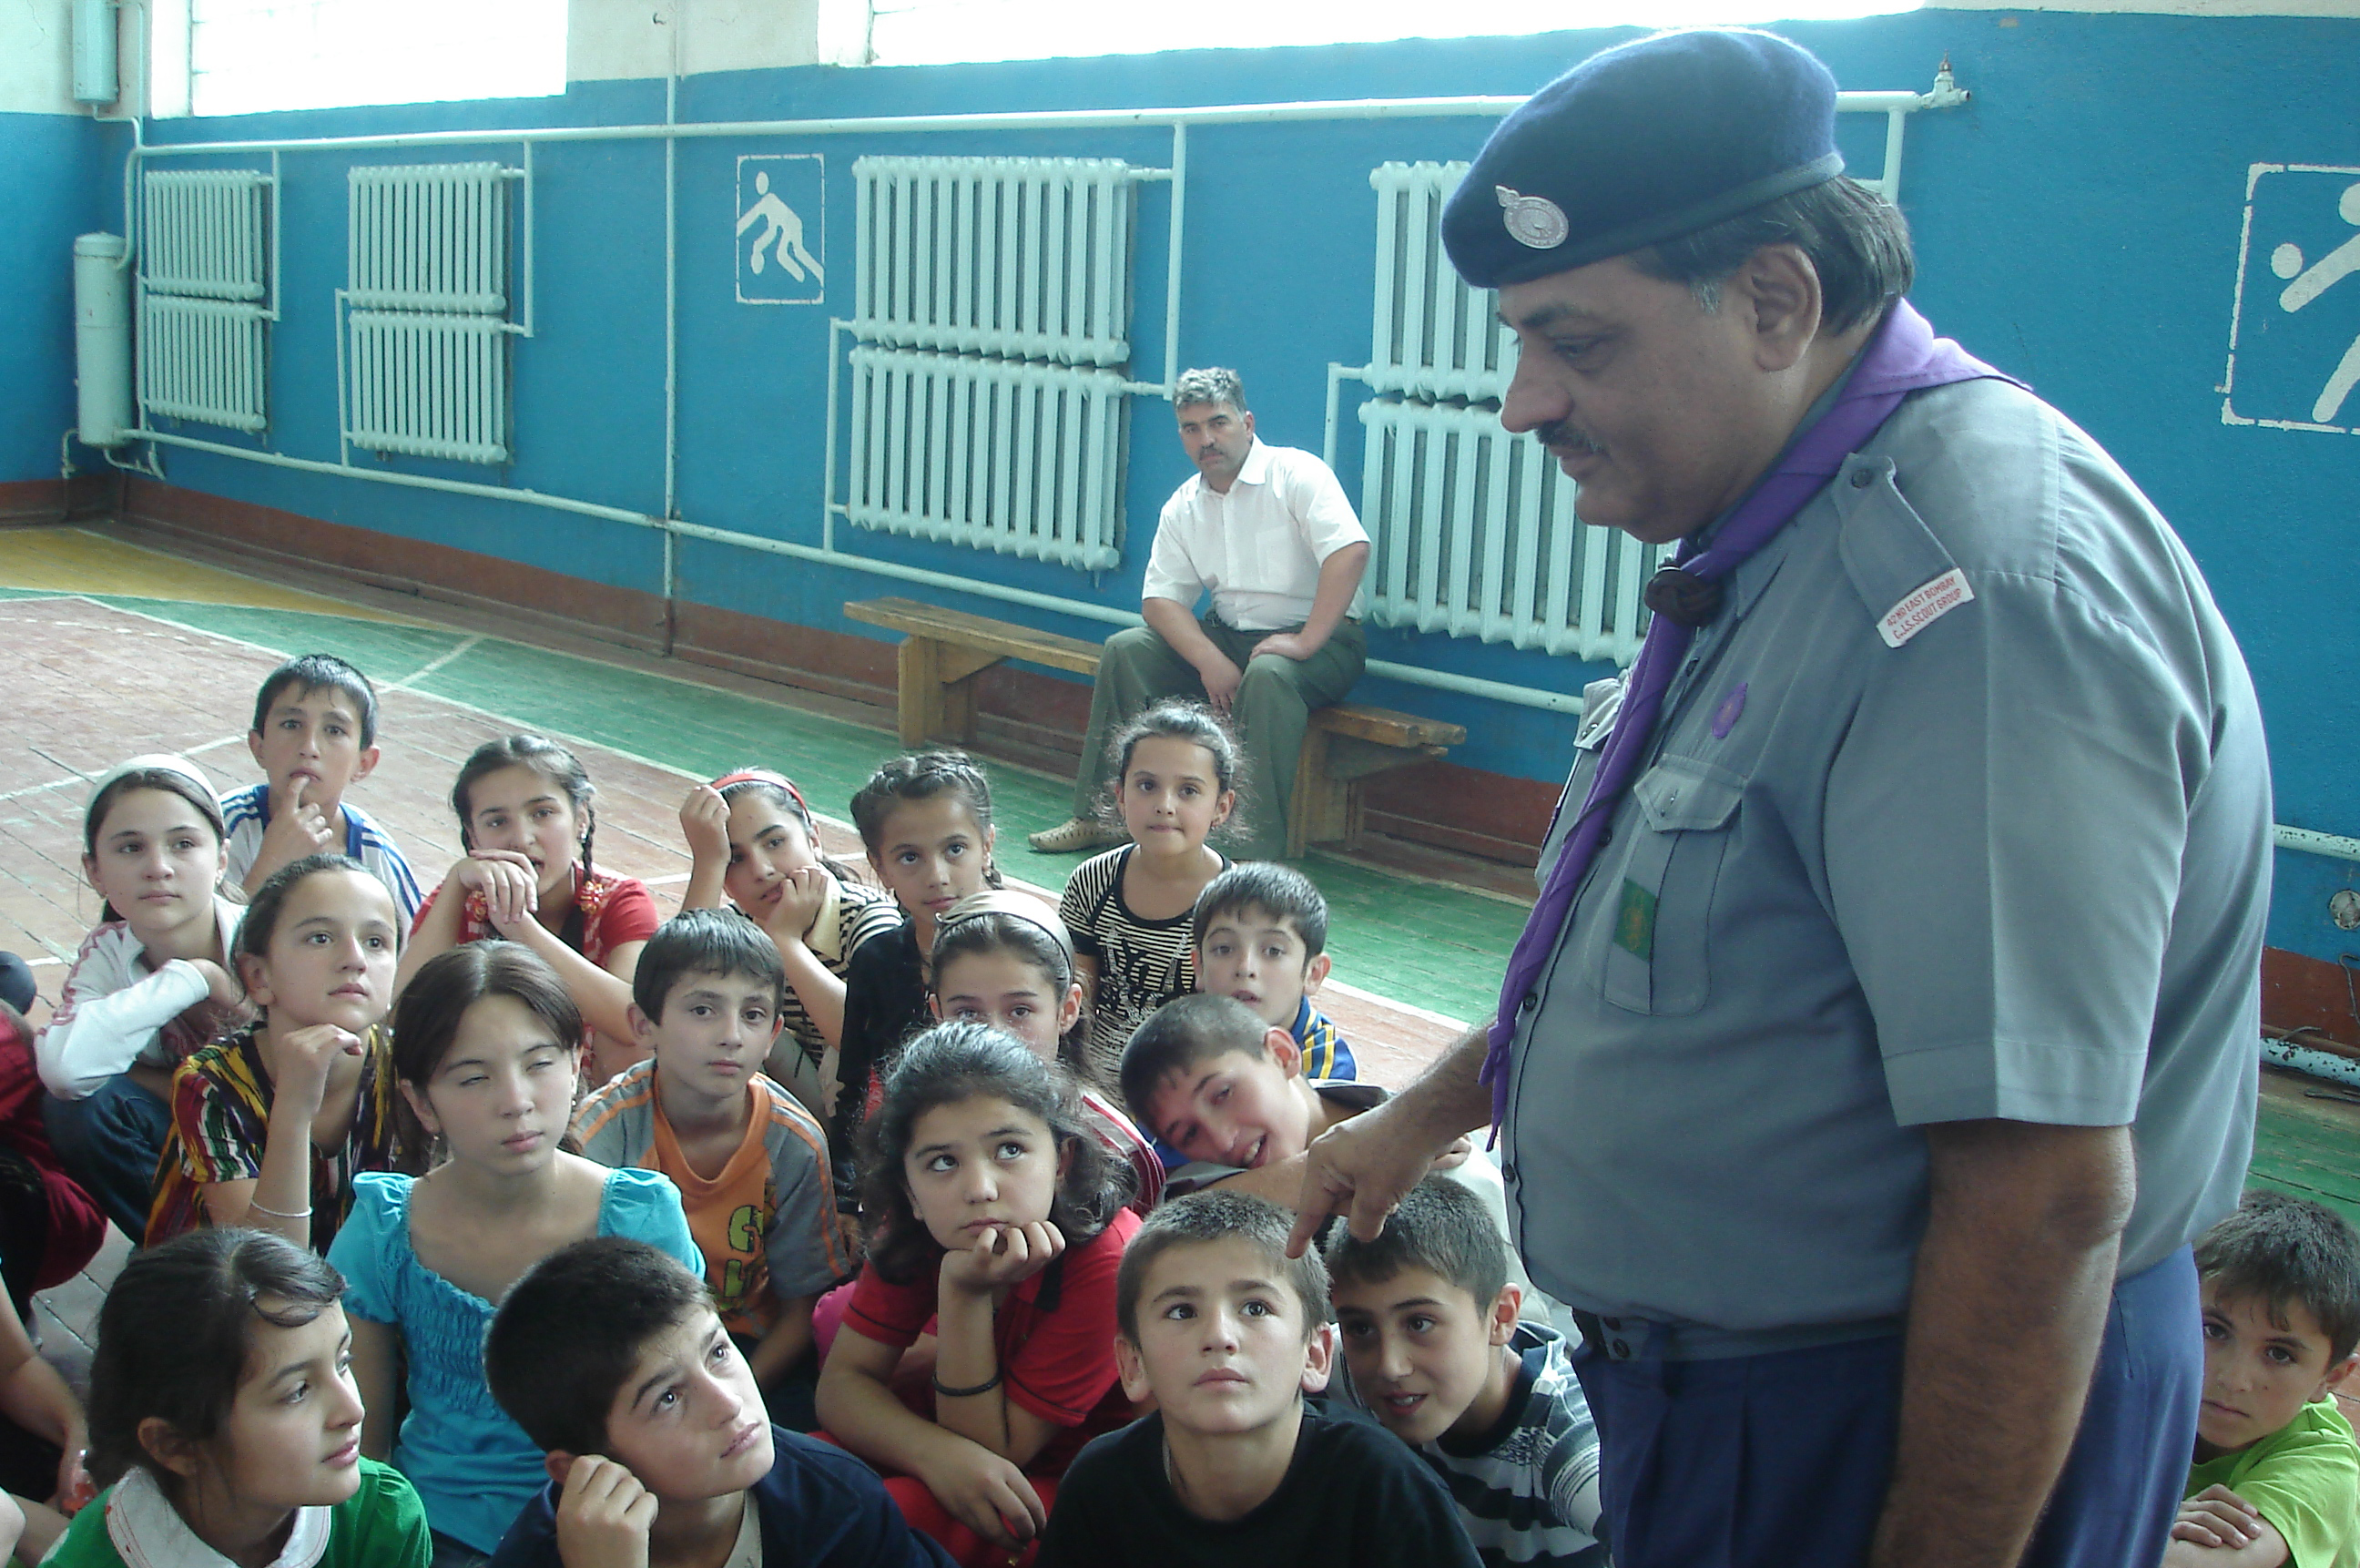 Scouts vetran Karim Moledina explains the importance of Scouting and Guiding to students at the Aga Khan Lycee in Khorog, Tajikistan. Photo: Courtesy of Karim Moledina